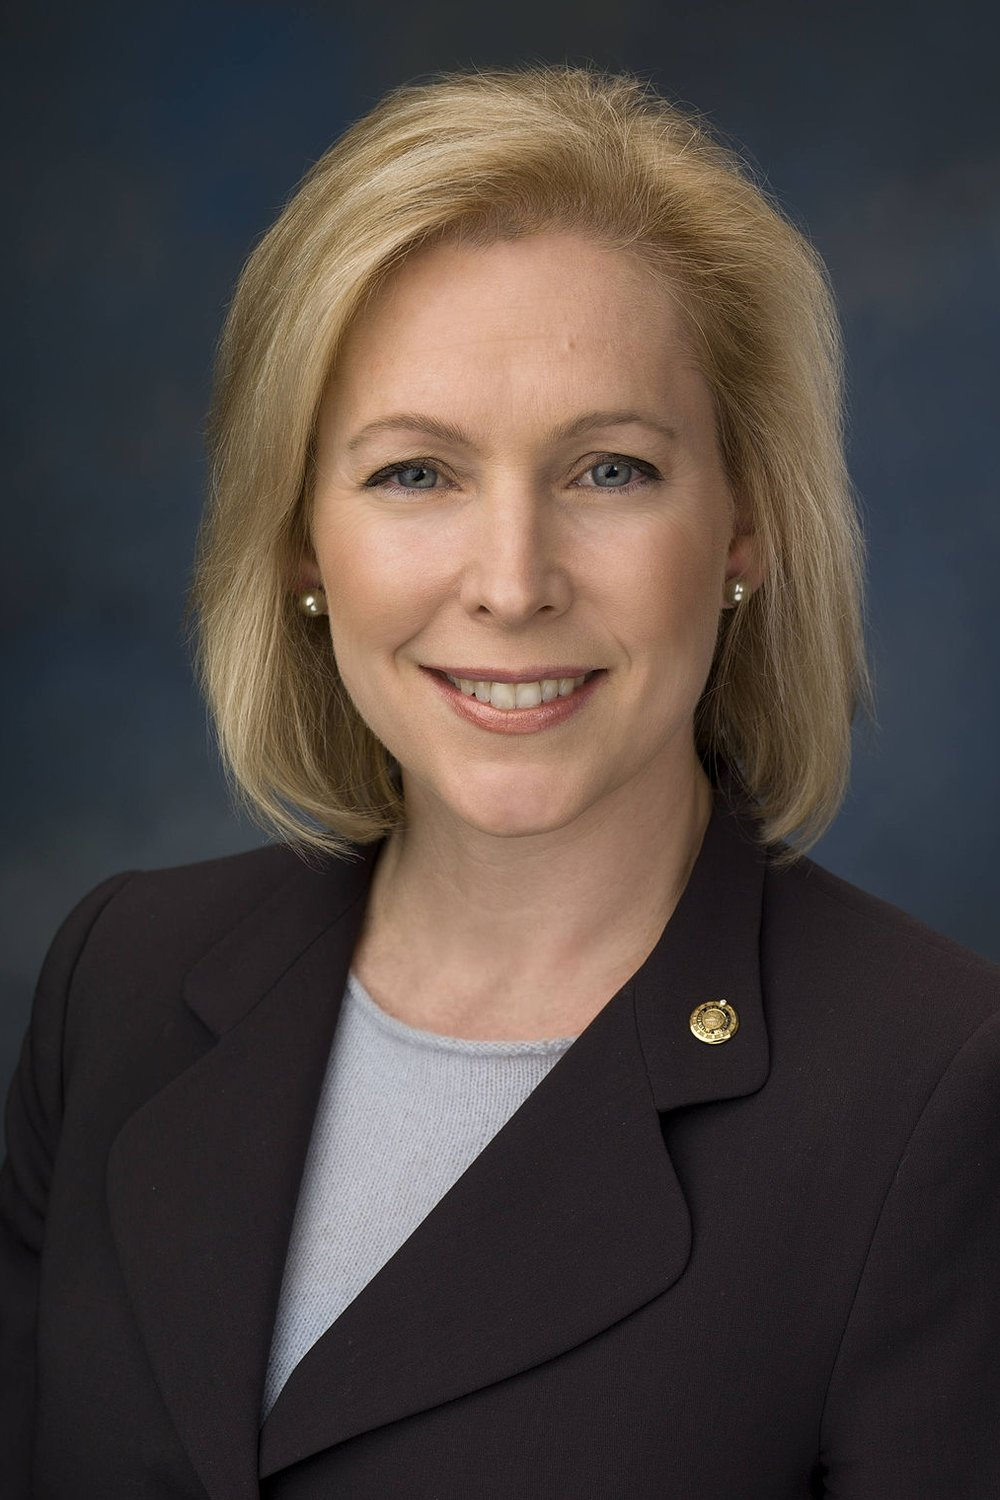 U.S. Senator from New York